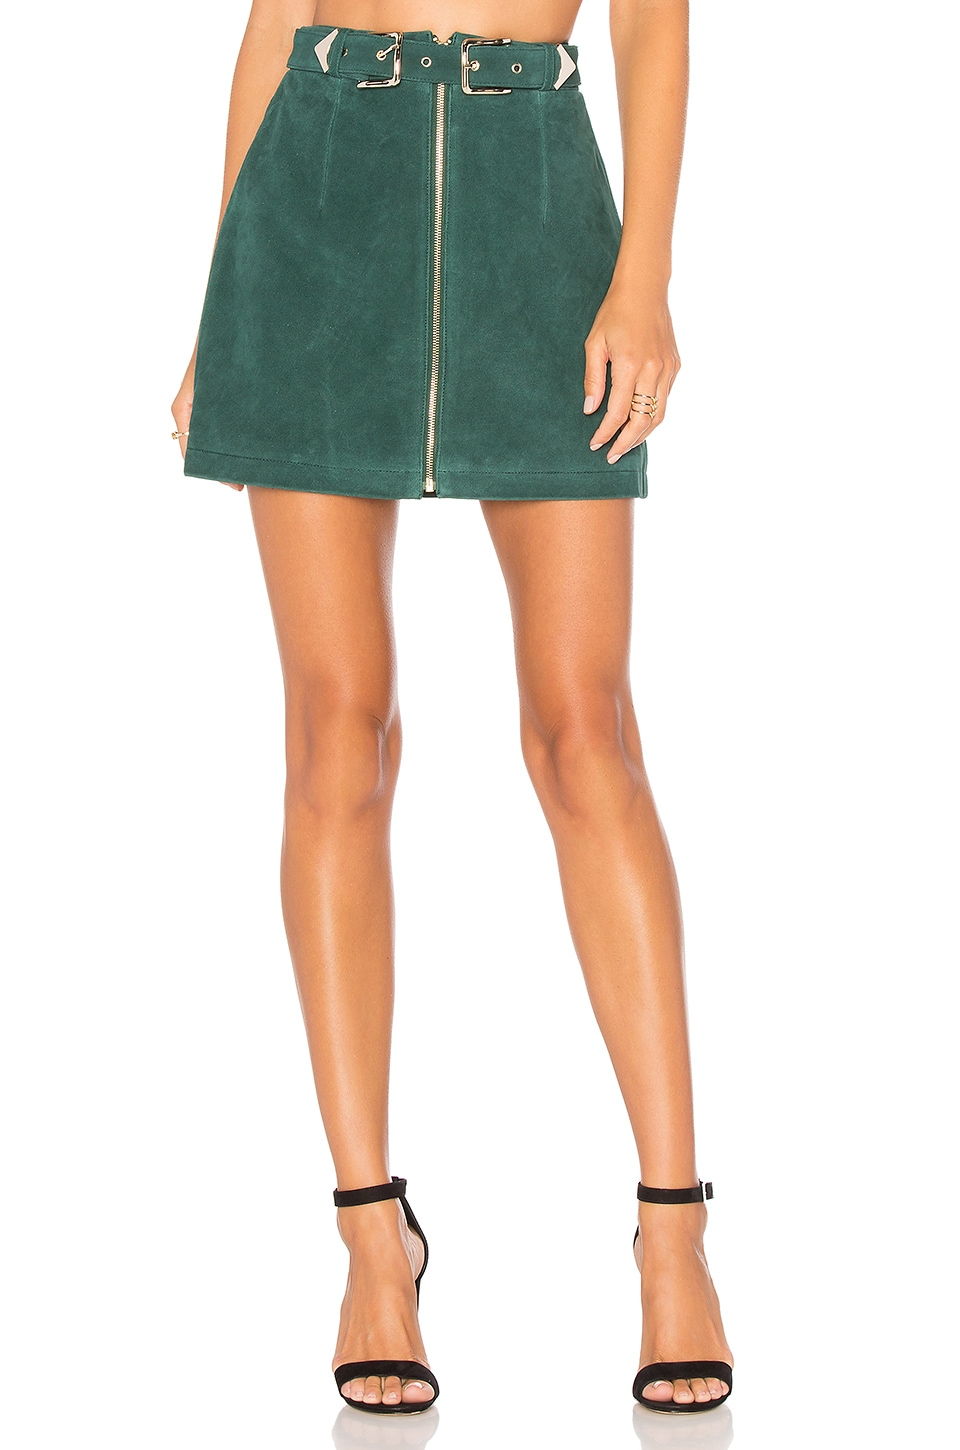 X by NBD Elise Skirt in Petrol Green